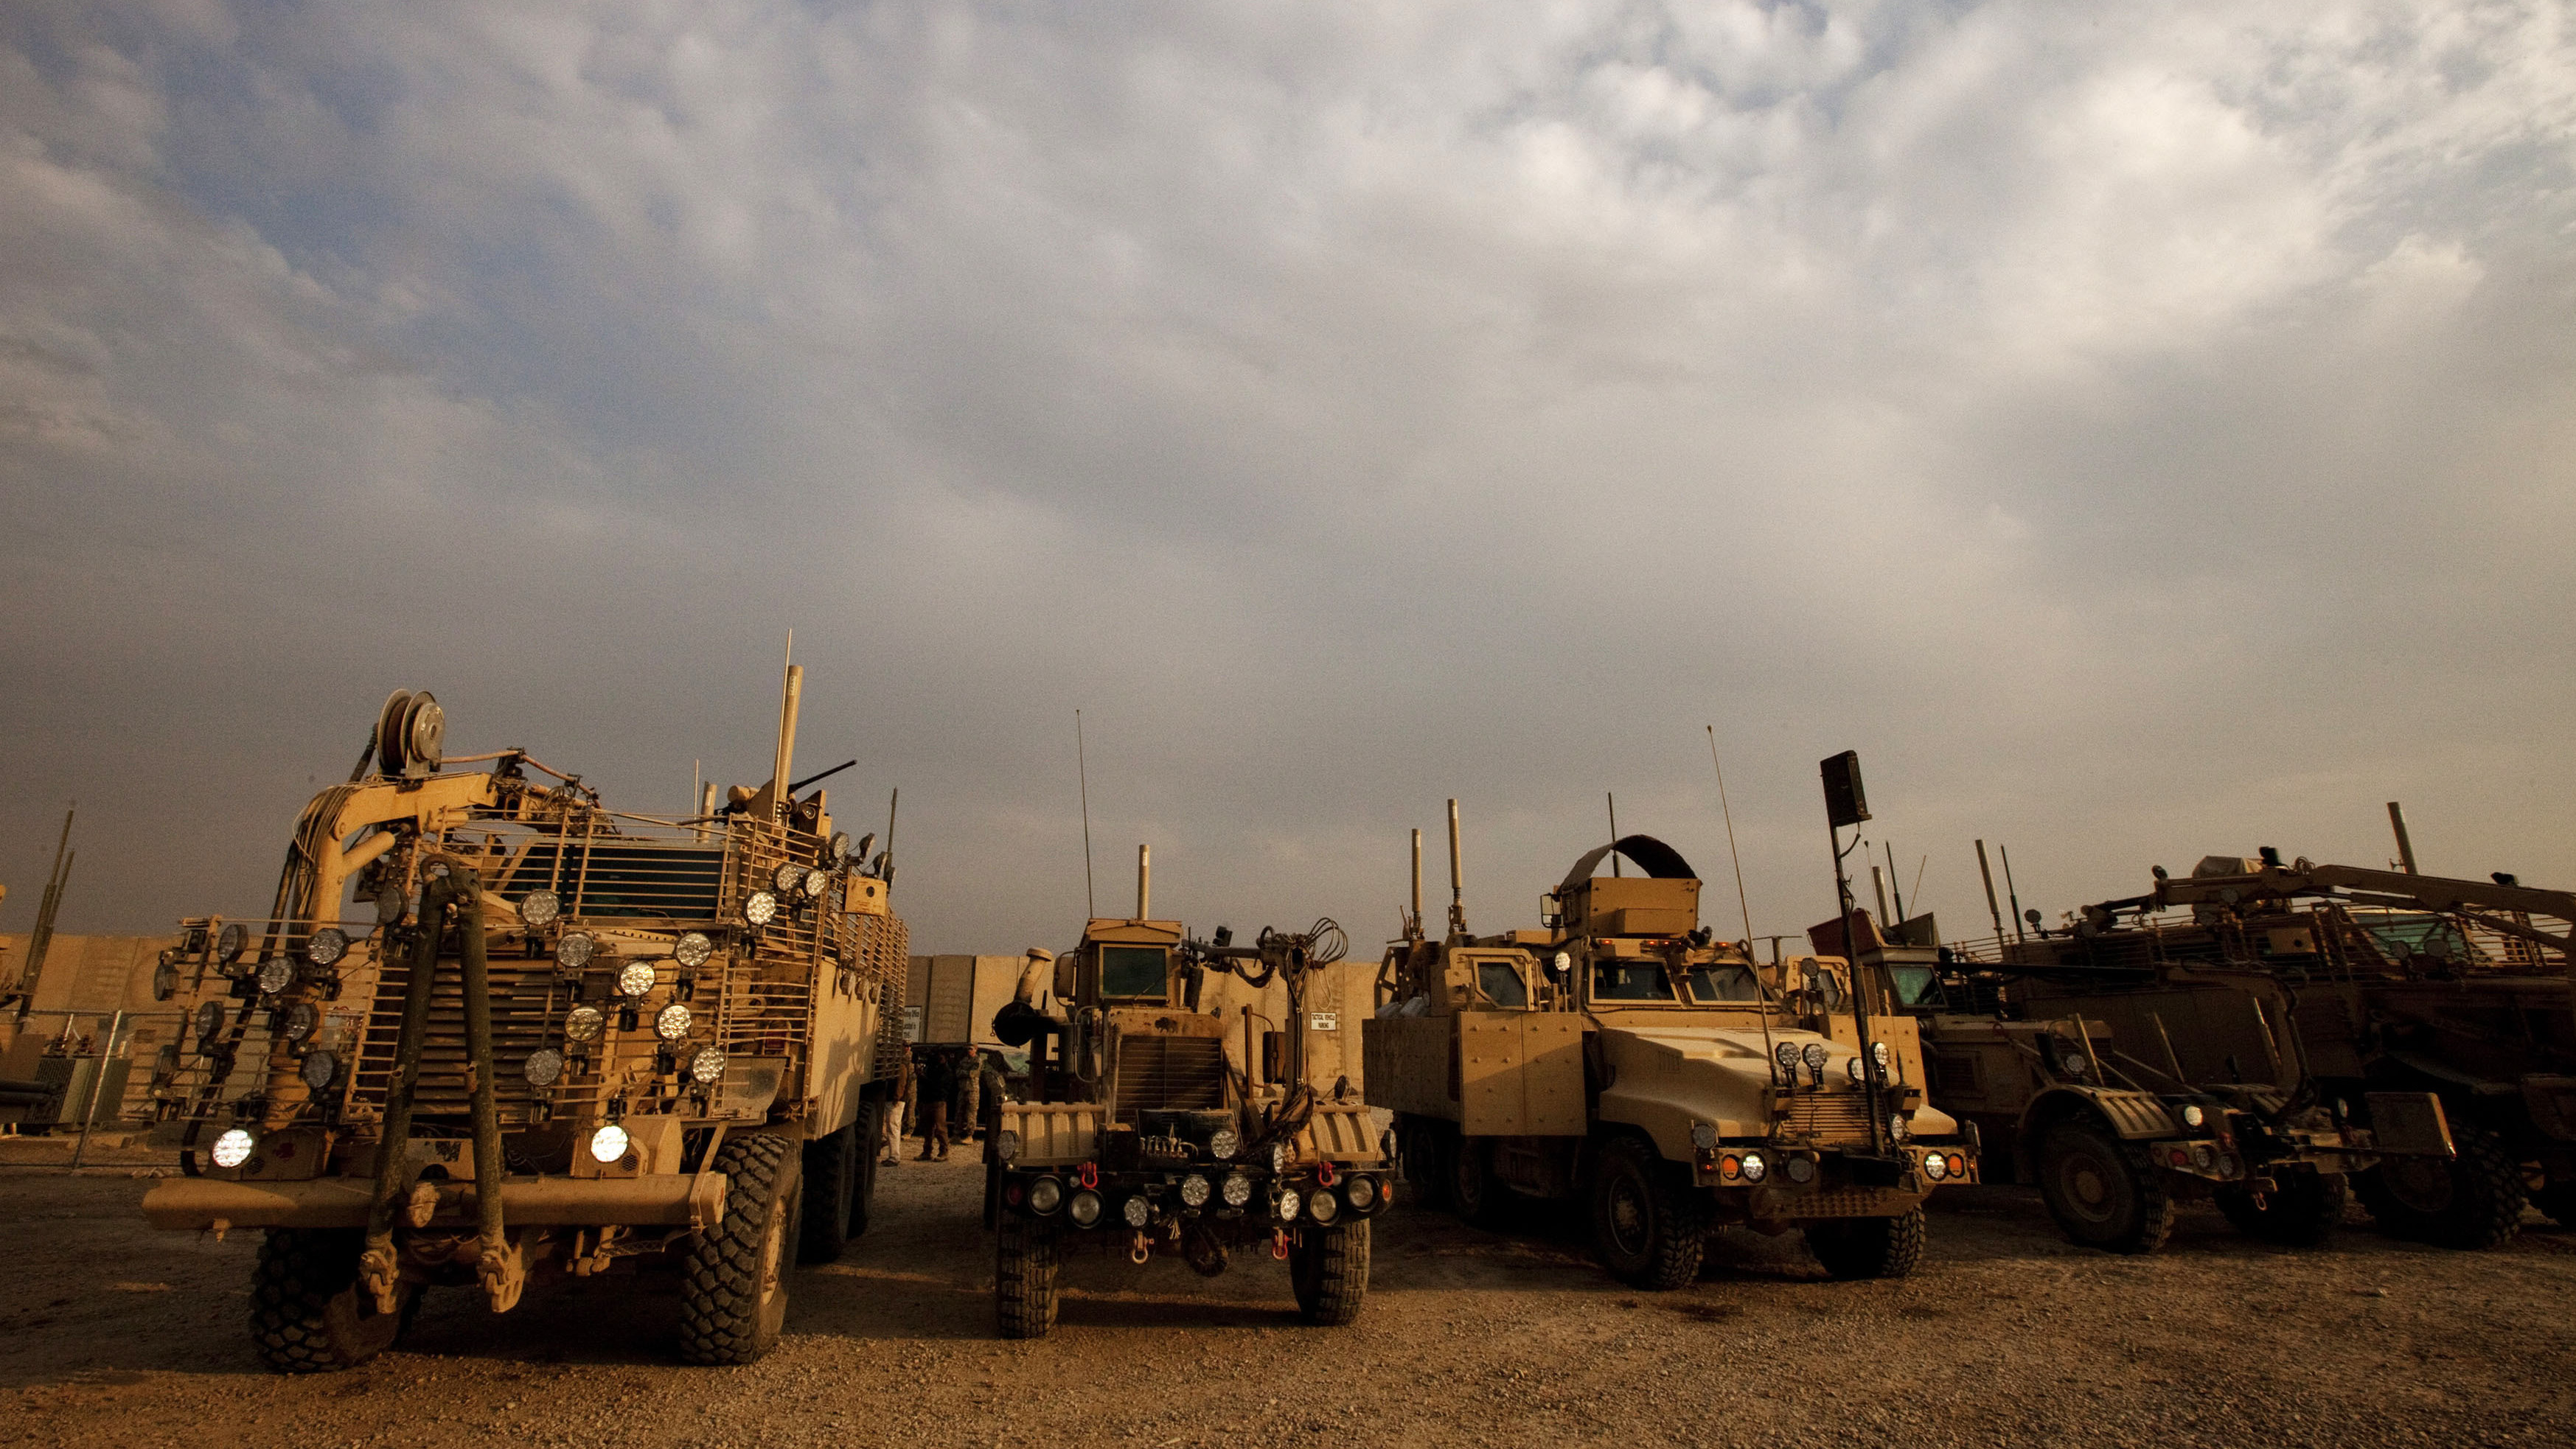 U.S. Army To Scrap $7 Billion In Equipment In Afghanistan